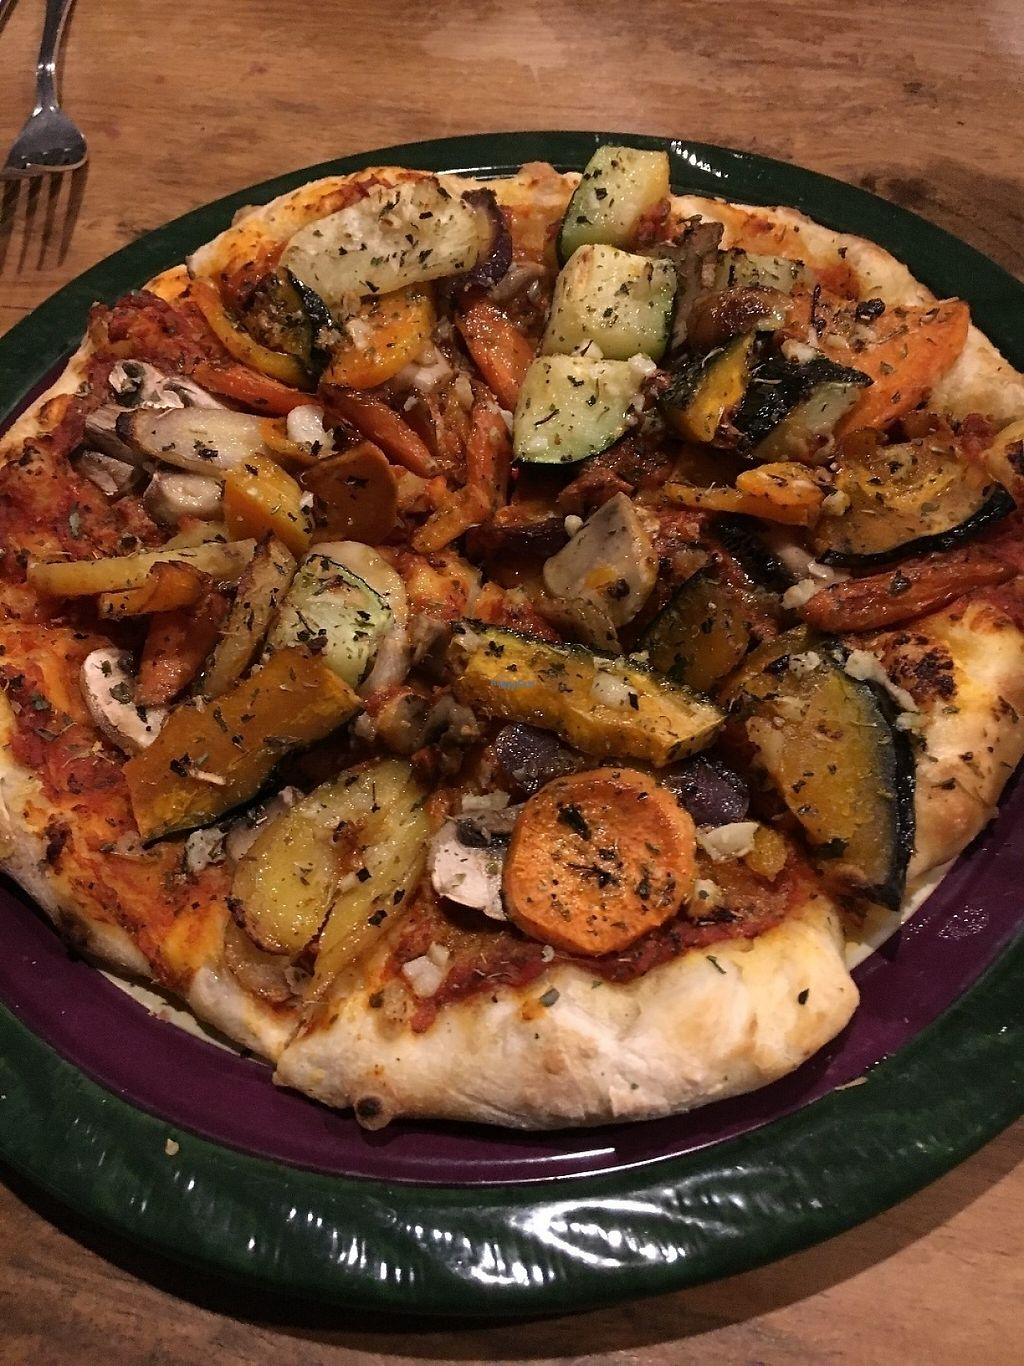 """Photo of Julia's Vegetarian Cuisine  by <a href=""""/members/profile/KWdaddio"""">KWdaddio</a> <br/>Roasted Veggie Pizza <br/> December 28, 2016  - <a href='/contact/abuse/image/25070/205773'>Report</a>"""